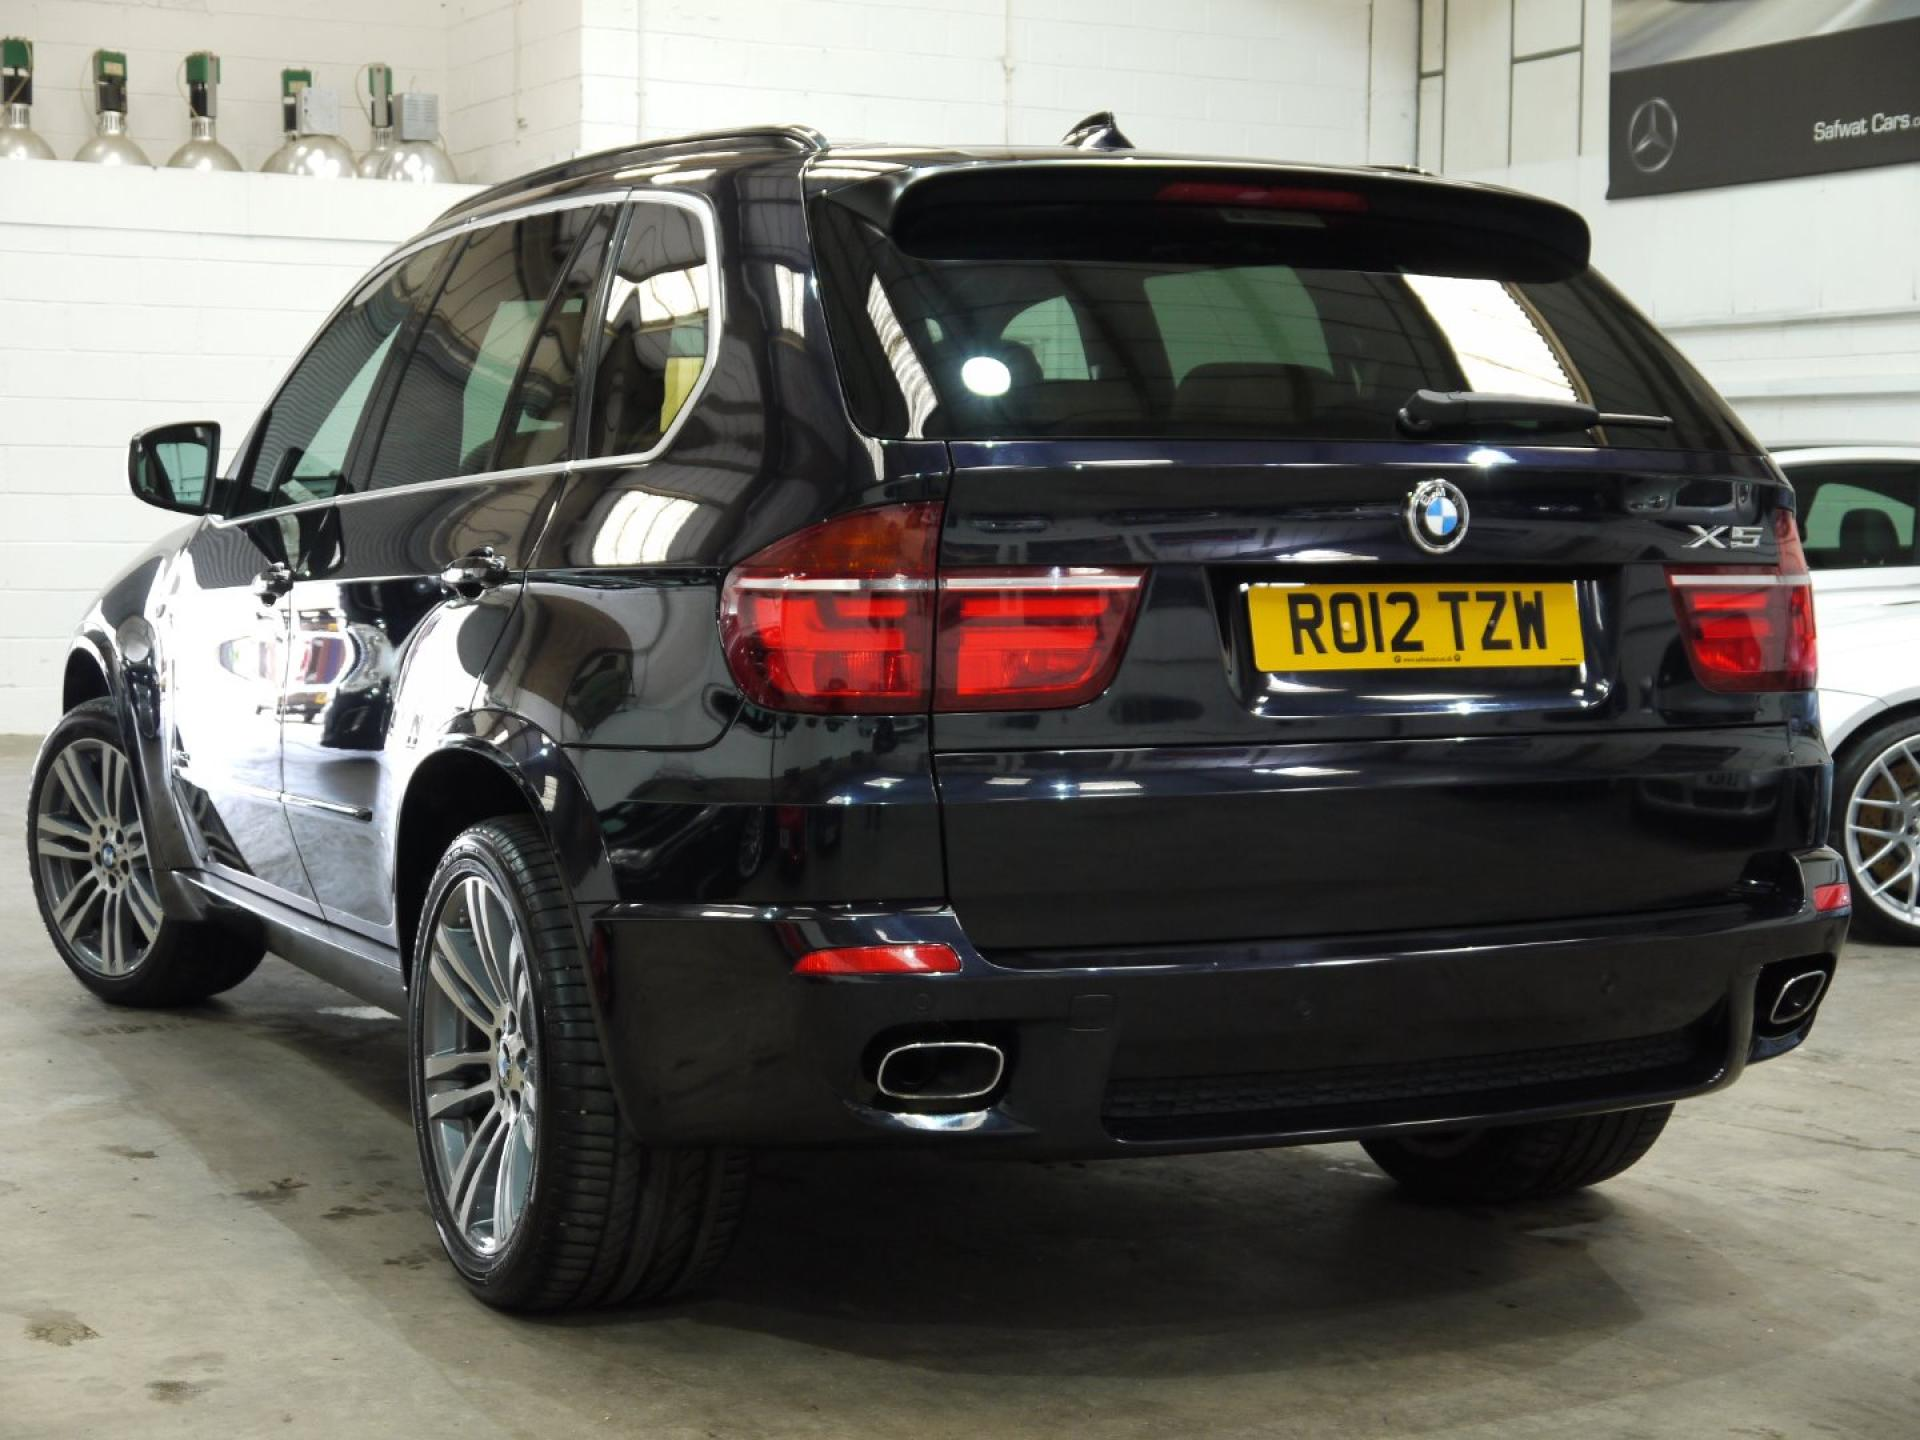 2012 12 reg bmw x5 xdrive40d m sport 7s auto southend essex from safwat cars. Black Bedroom Furniture Sets. Home Design Ideas